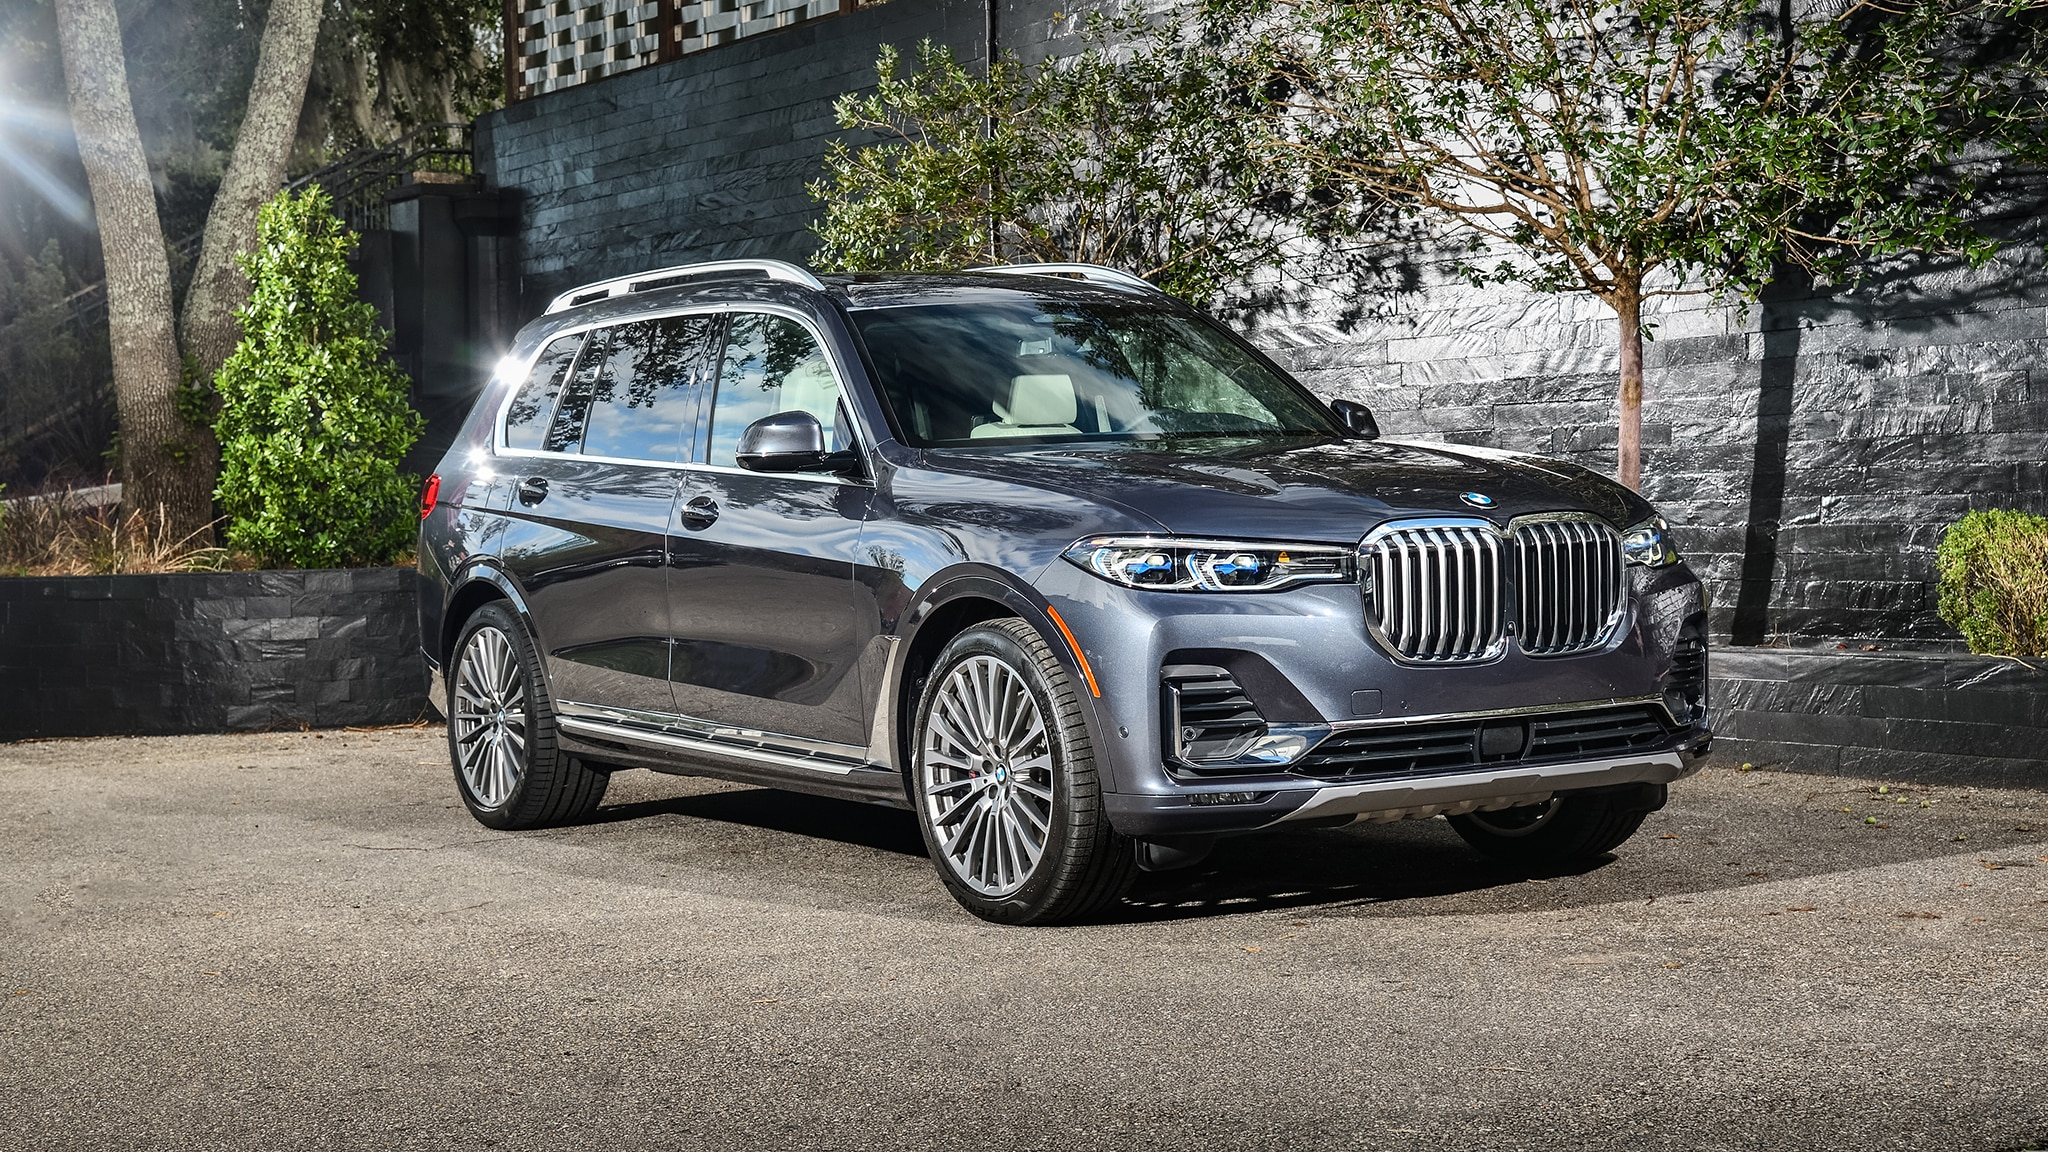 2019 BMW X7 First Drive: The 7 Series of Luxury SUVs ...